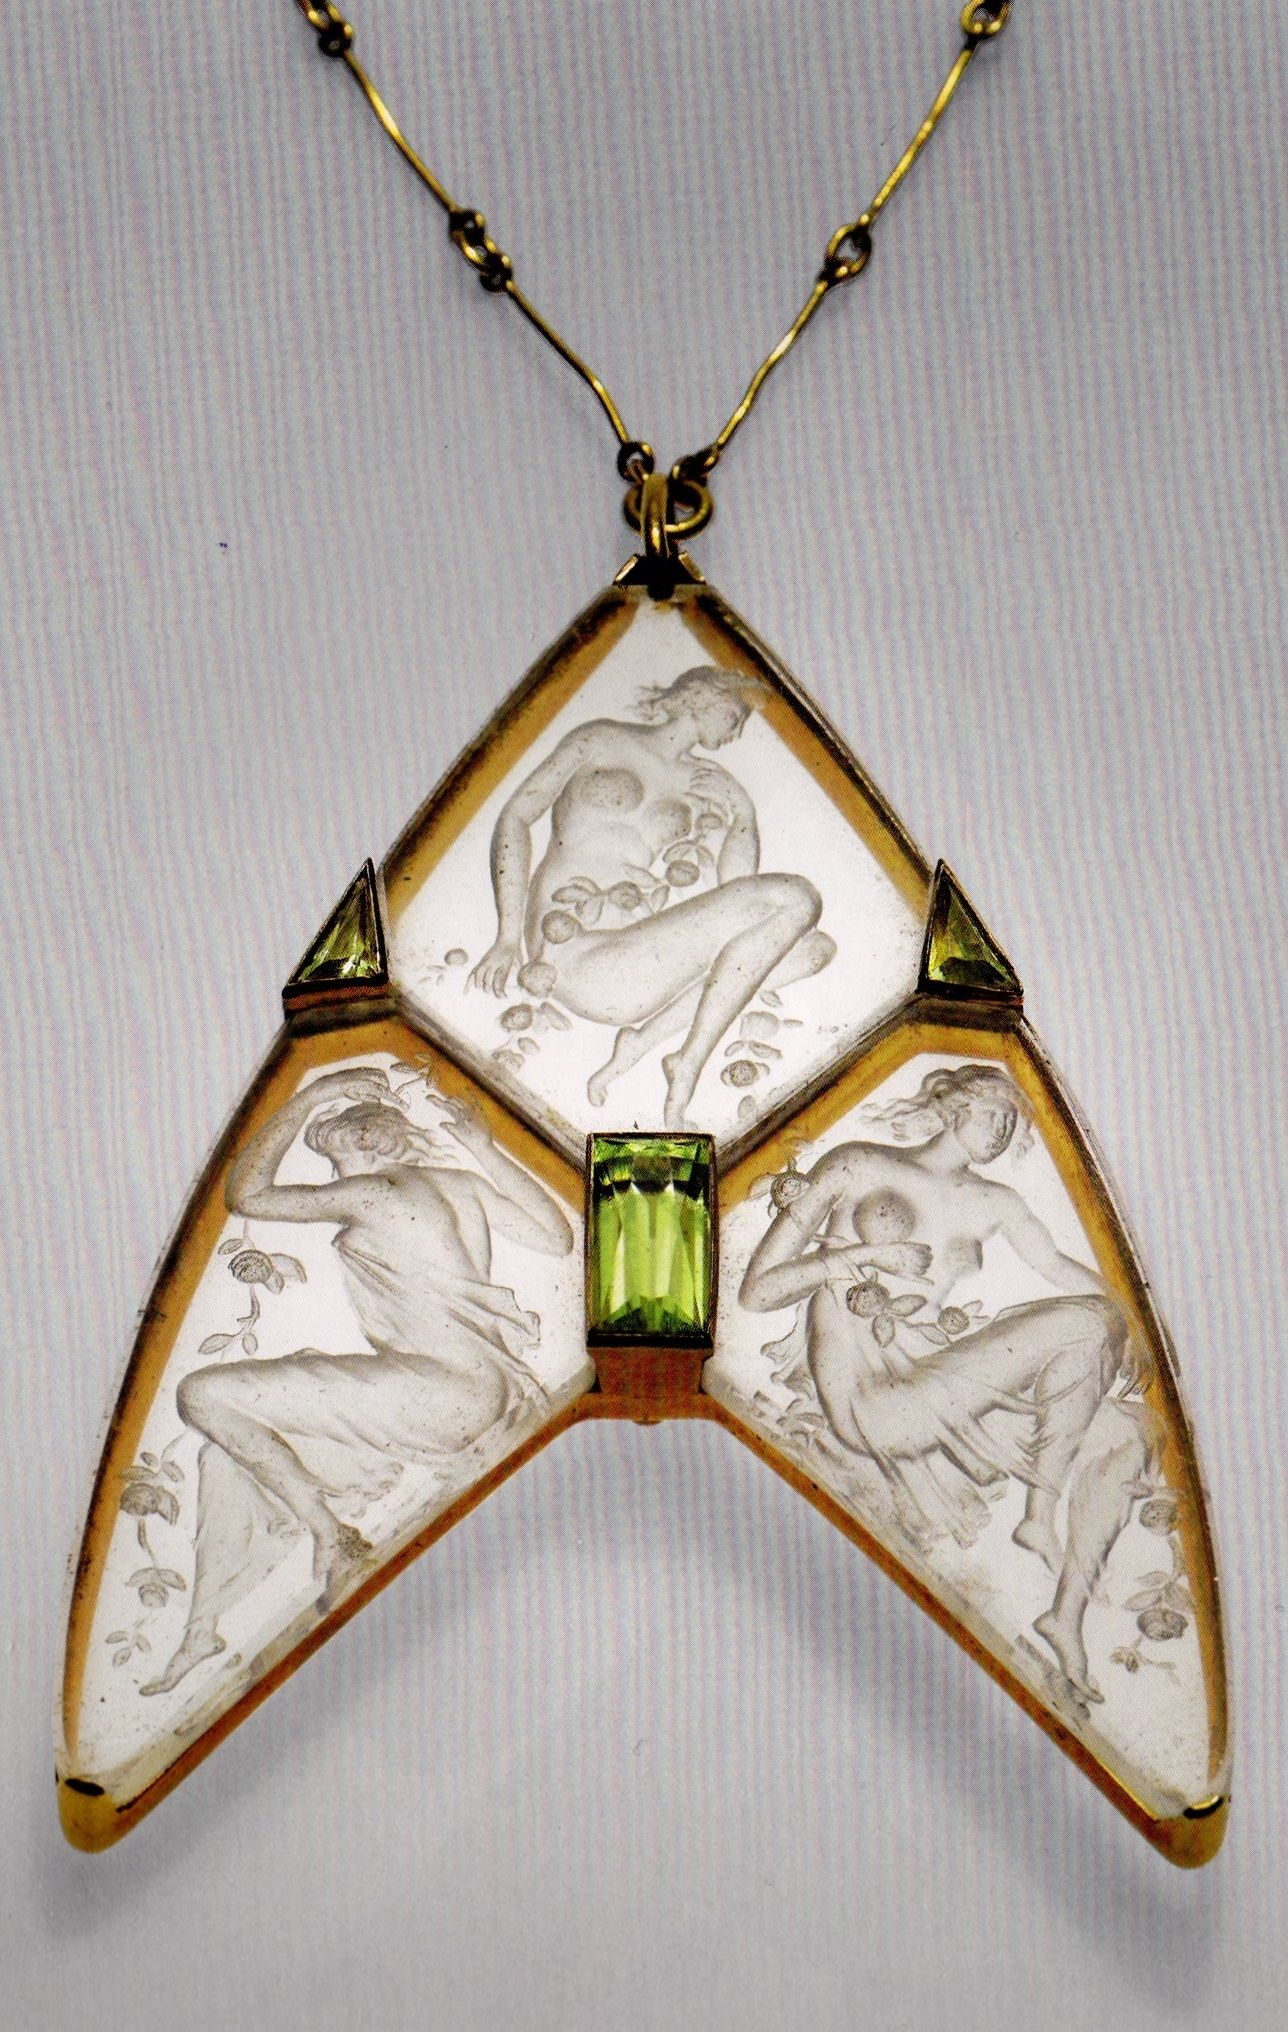 An Art Nouveau pendant necklace with three female figures, by René Lalique, 1904-05. Composed of gold, peridot and engraved glass.